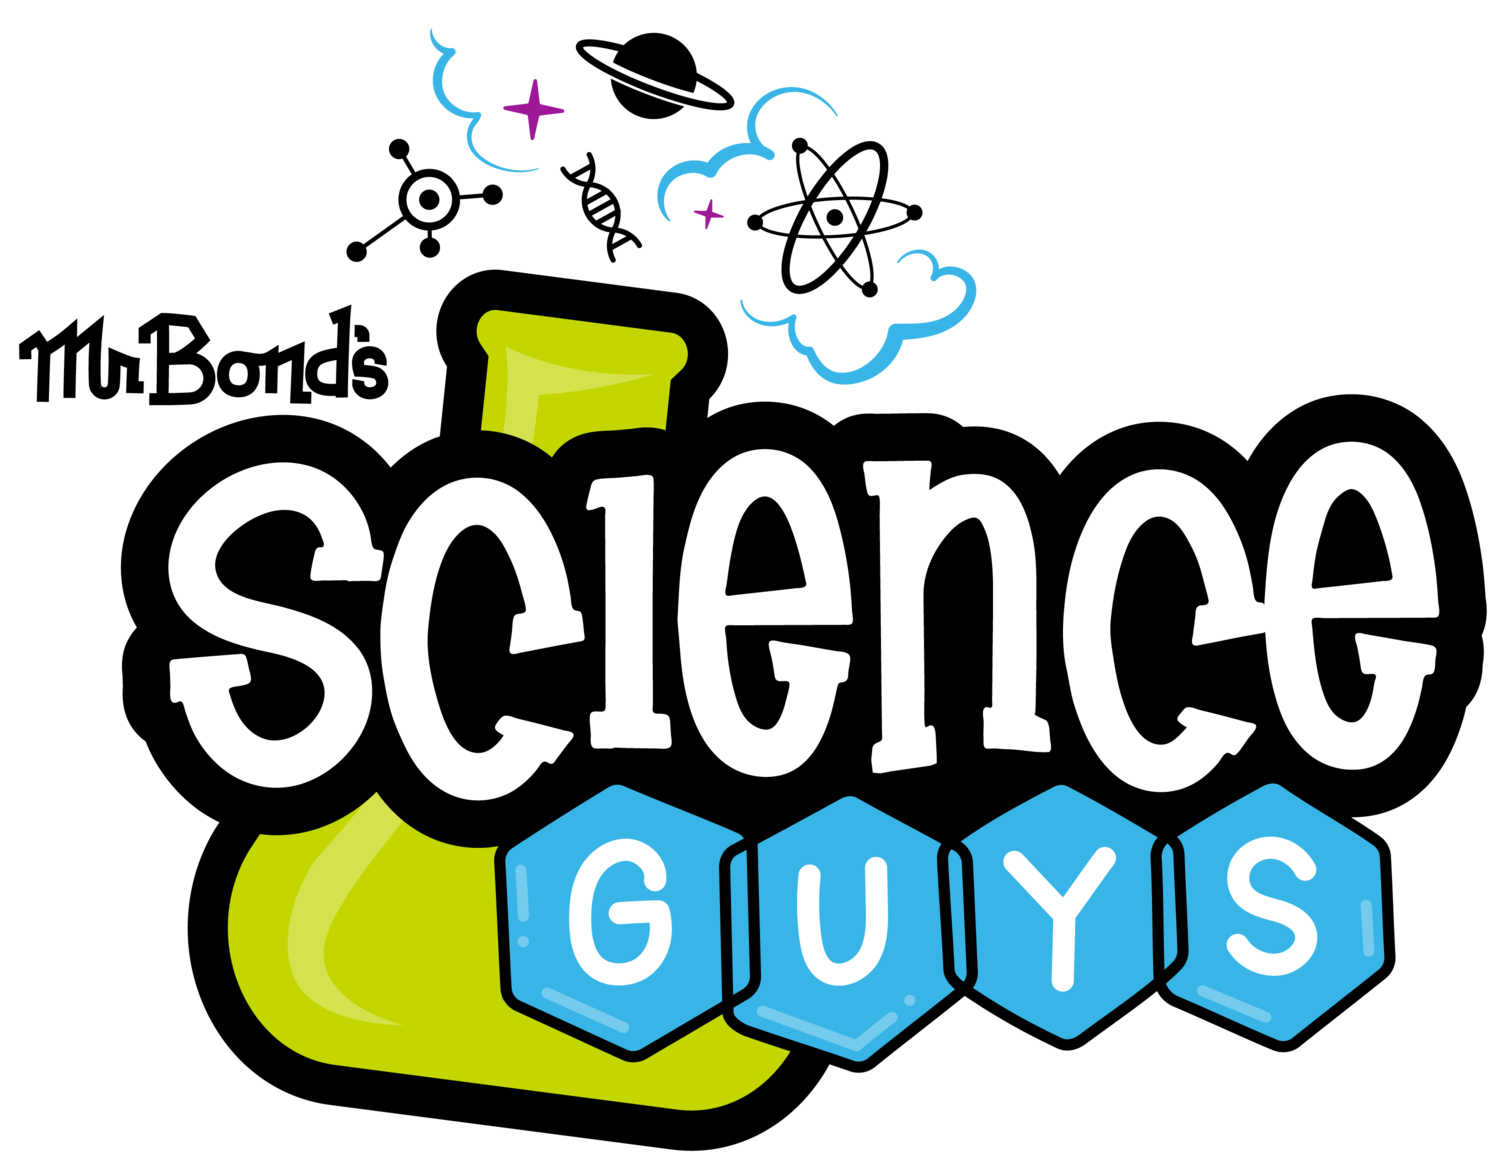 Mr. Bond's Science Guys